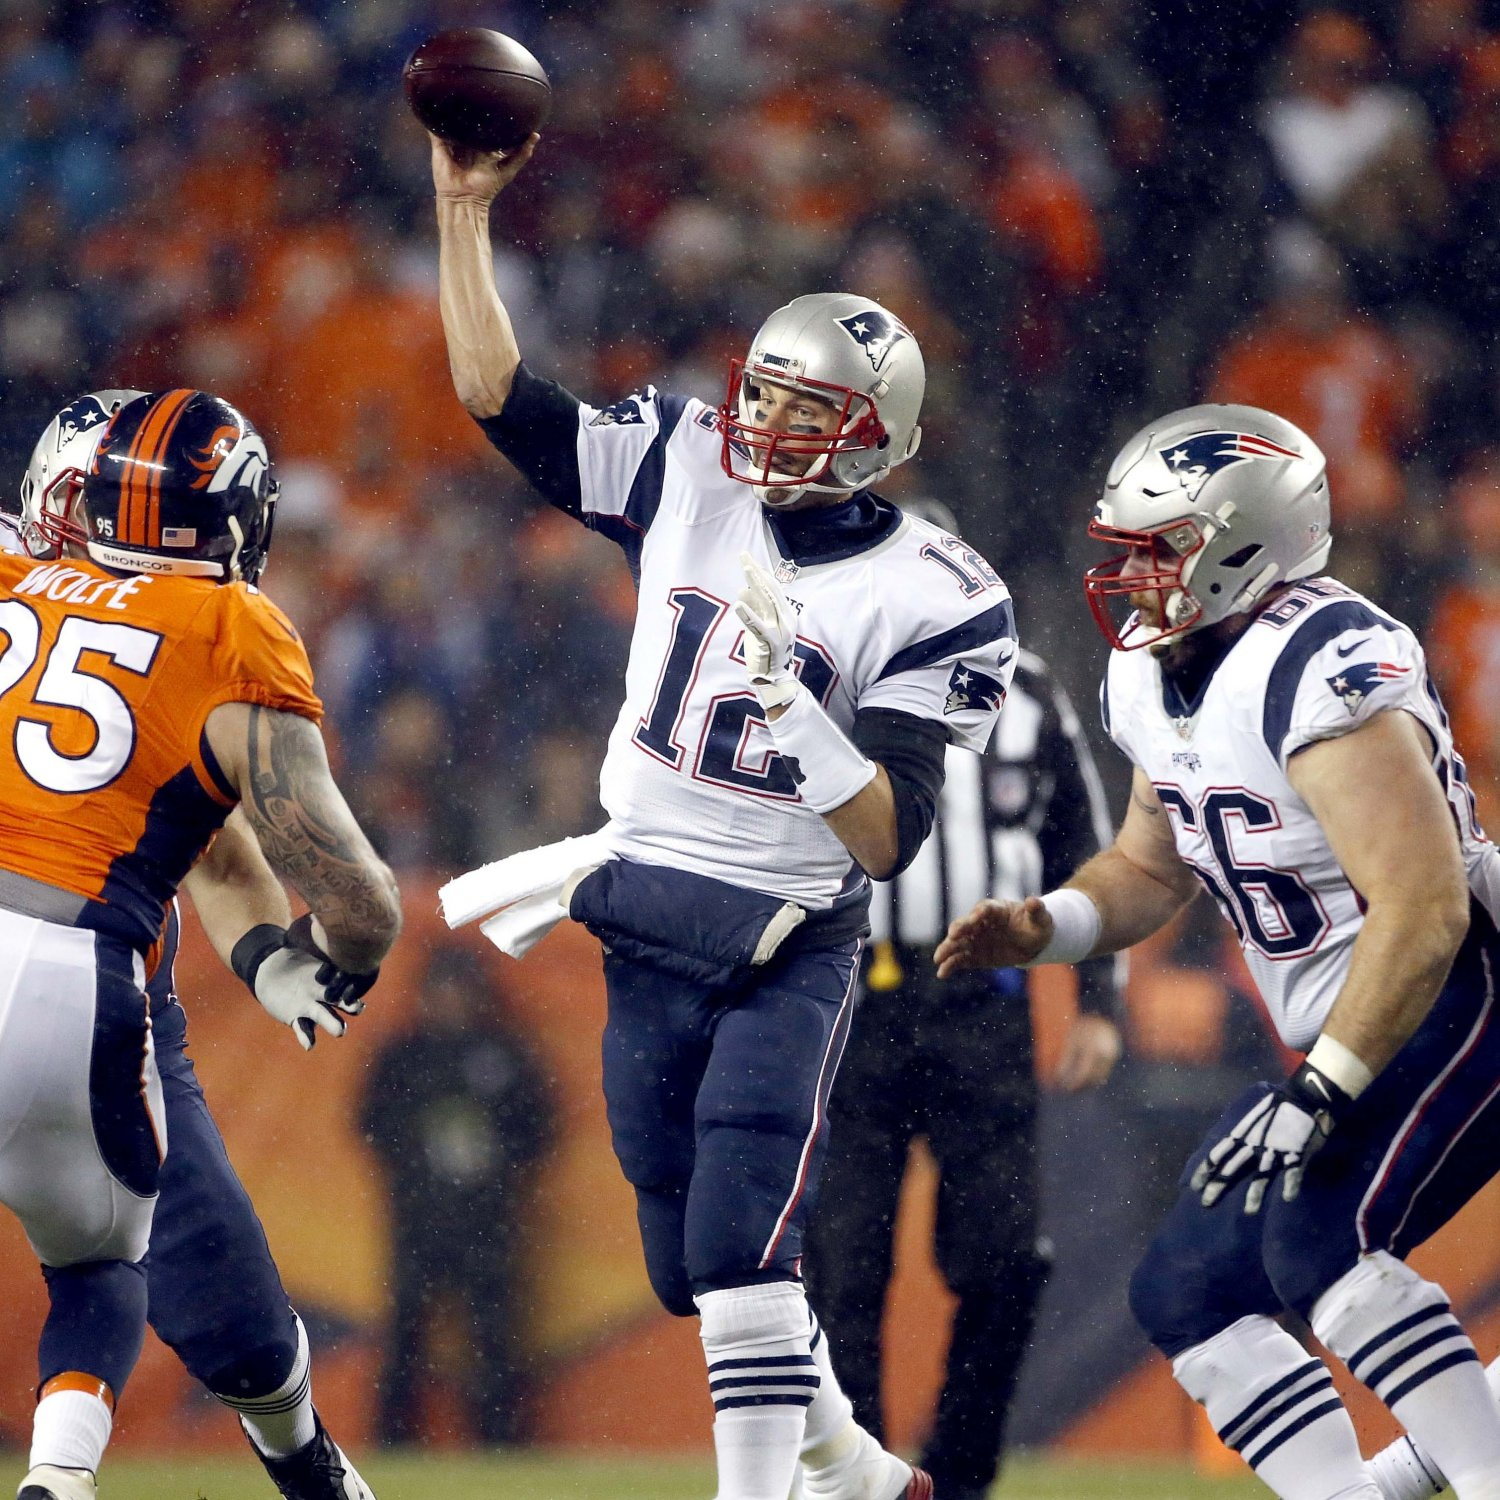 San Diego Chargers Game Live Stream: AFC Championship Game 2016: Live Stream, Odds Guide For